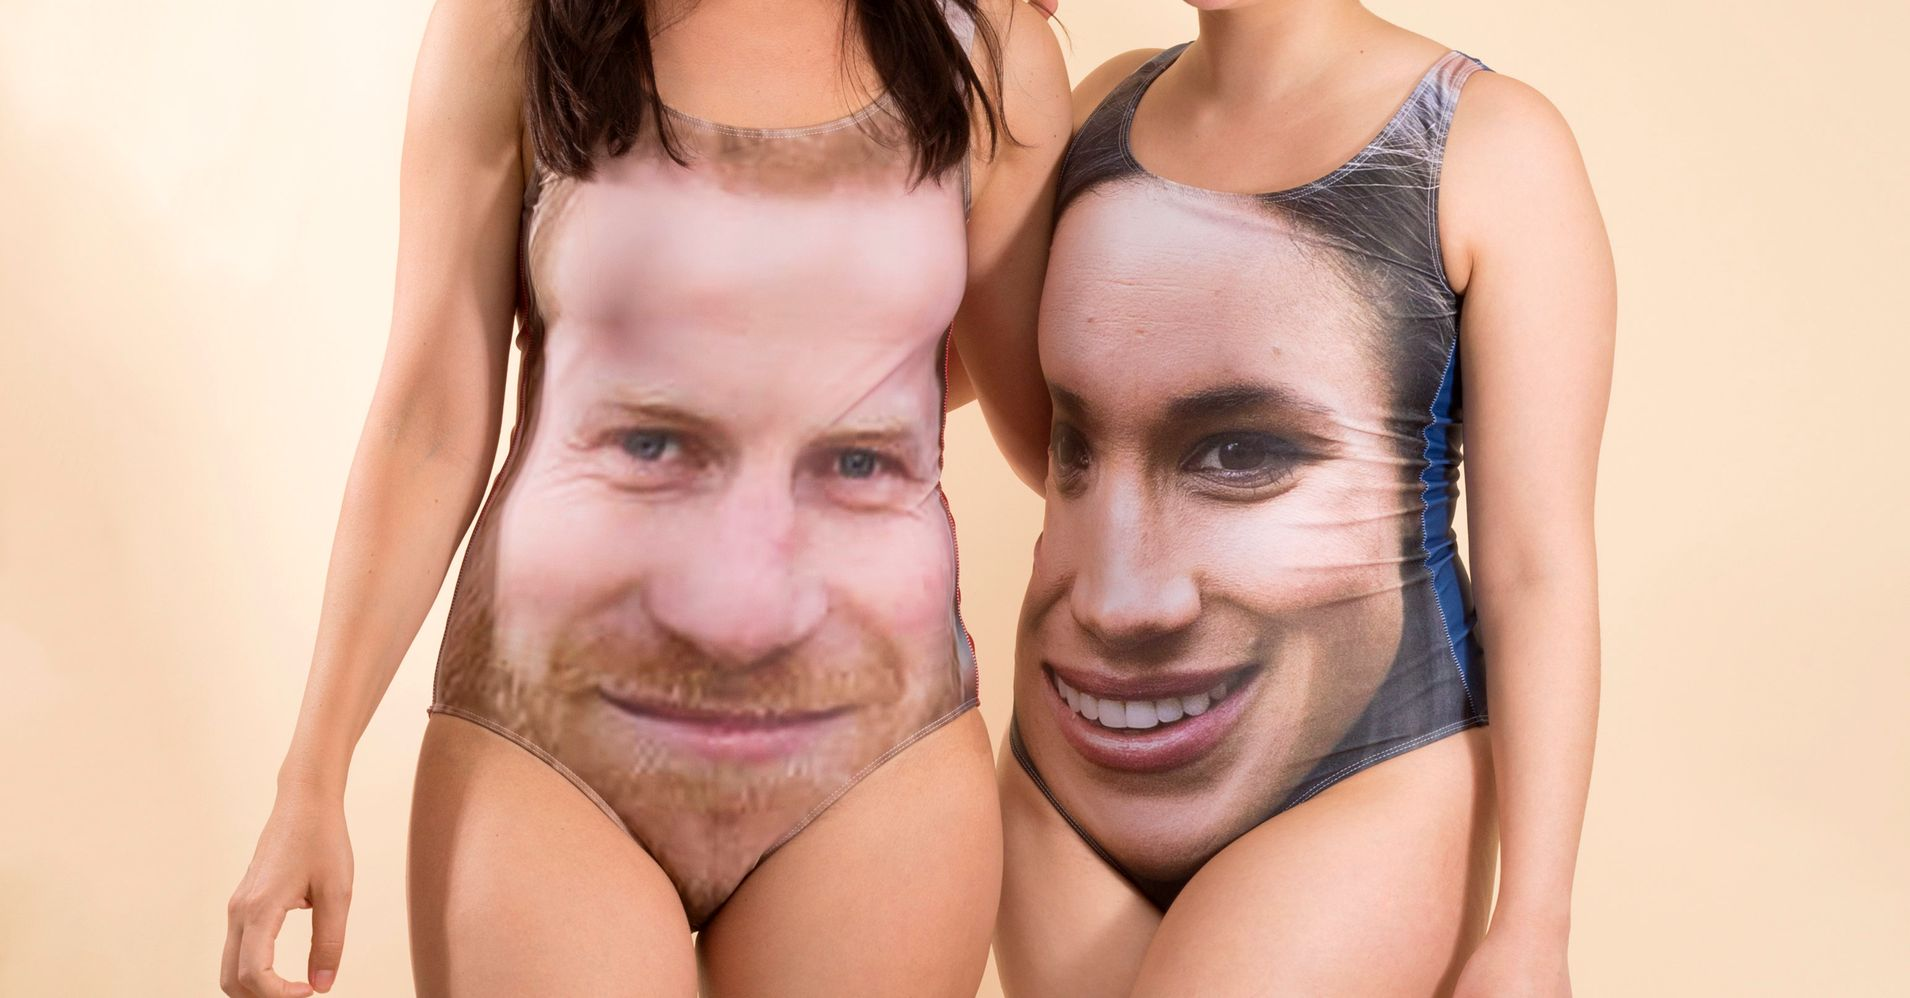 3922476f9c These Prince Harry And Meghan Markle Bathing Suits Are... Something Else |  HuffPost Life